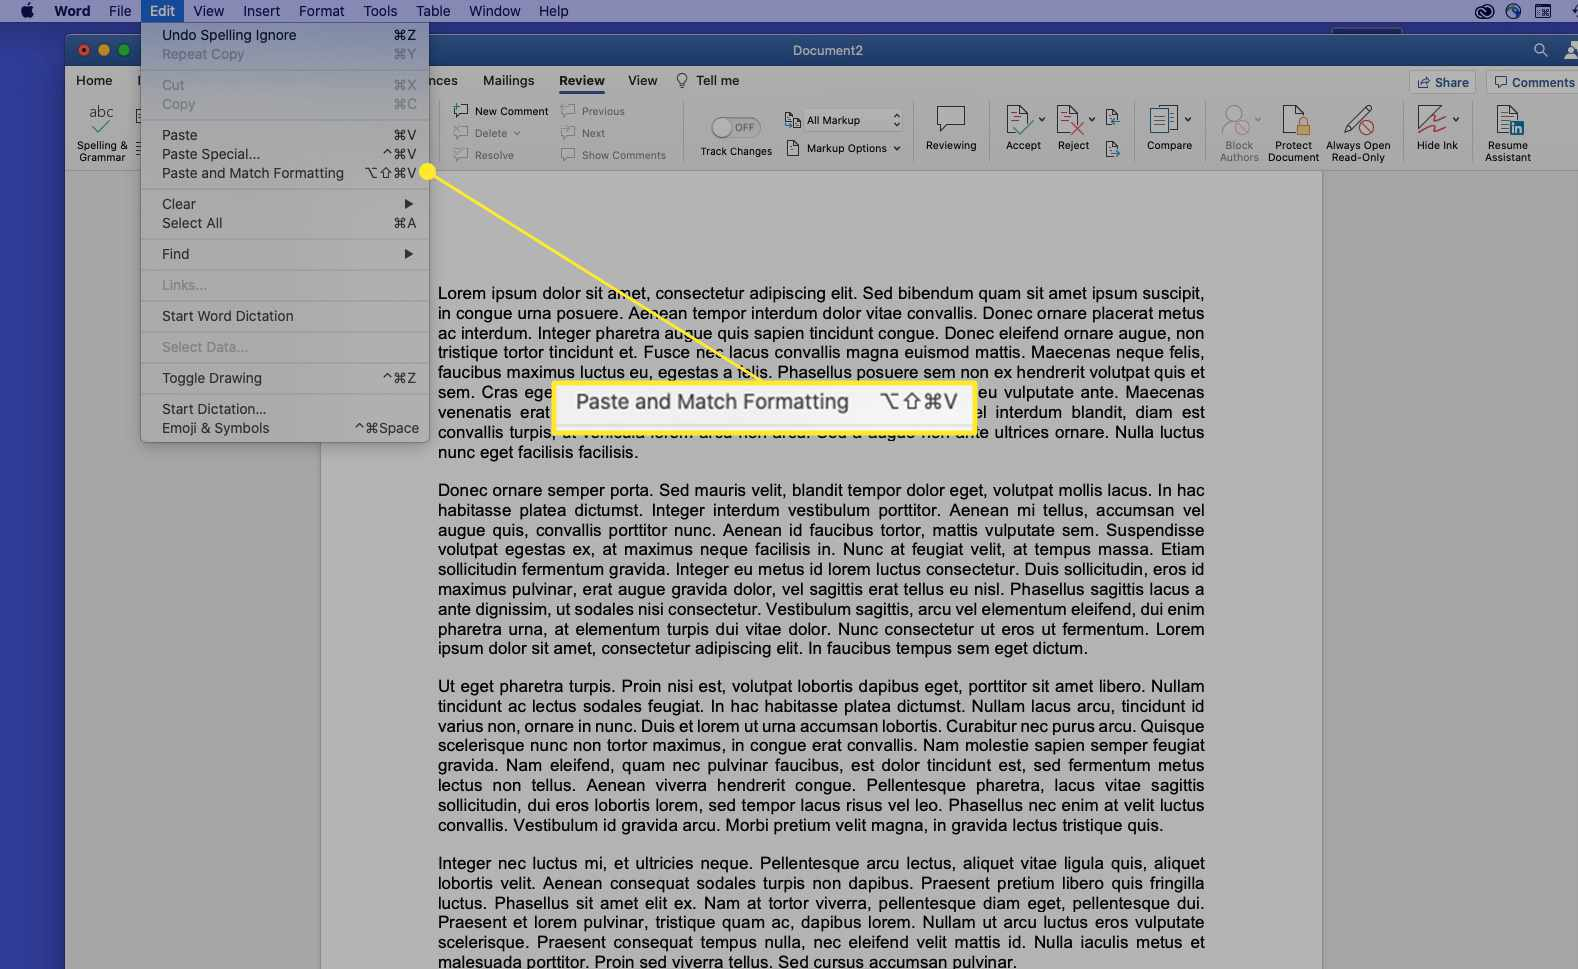 Paste and Match Formatting highlighted in Word for Mac